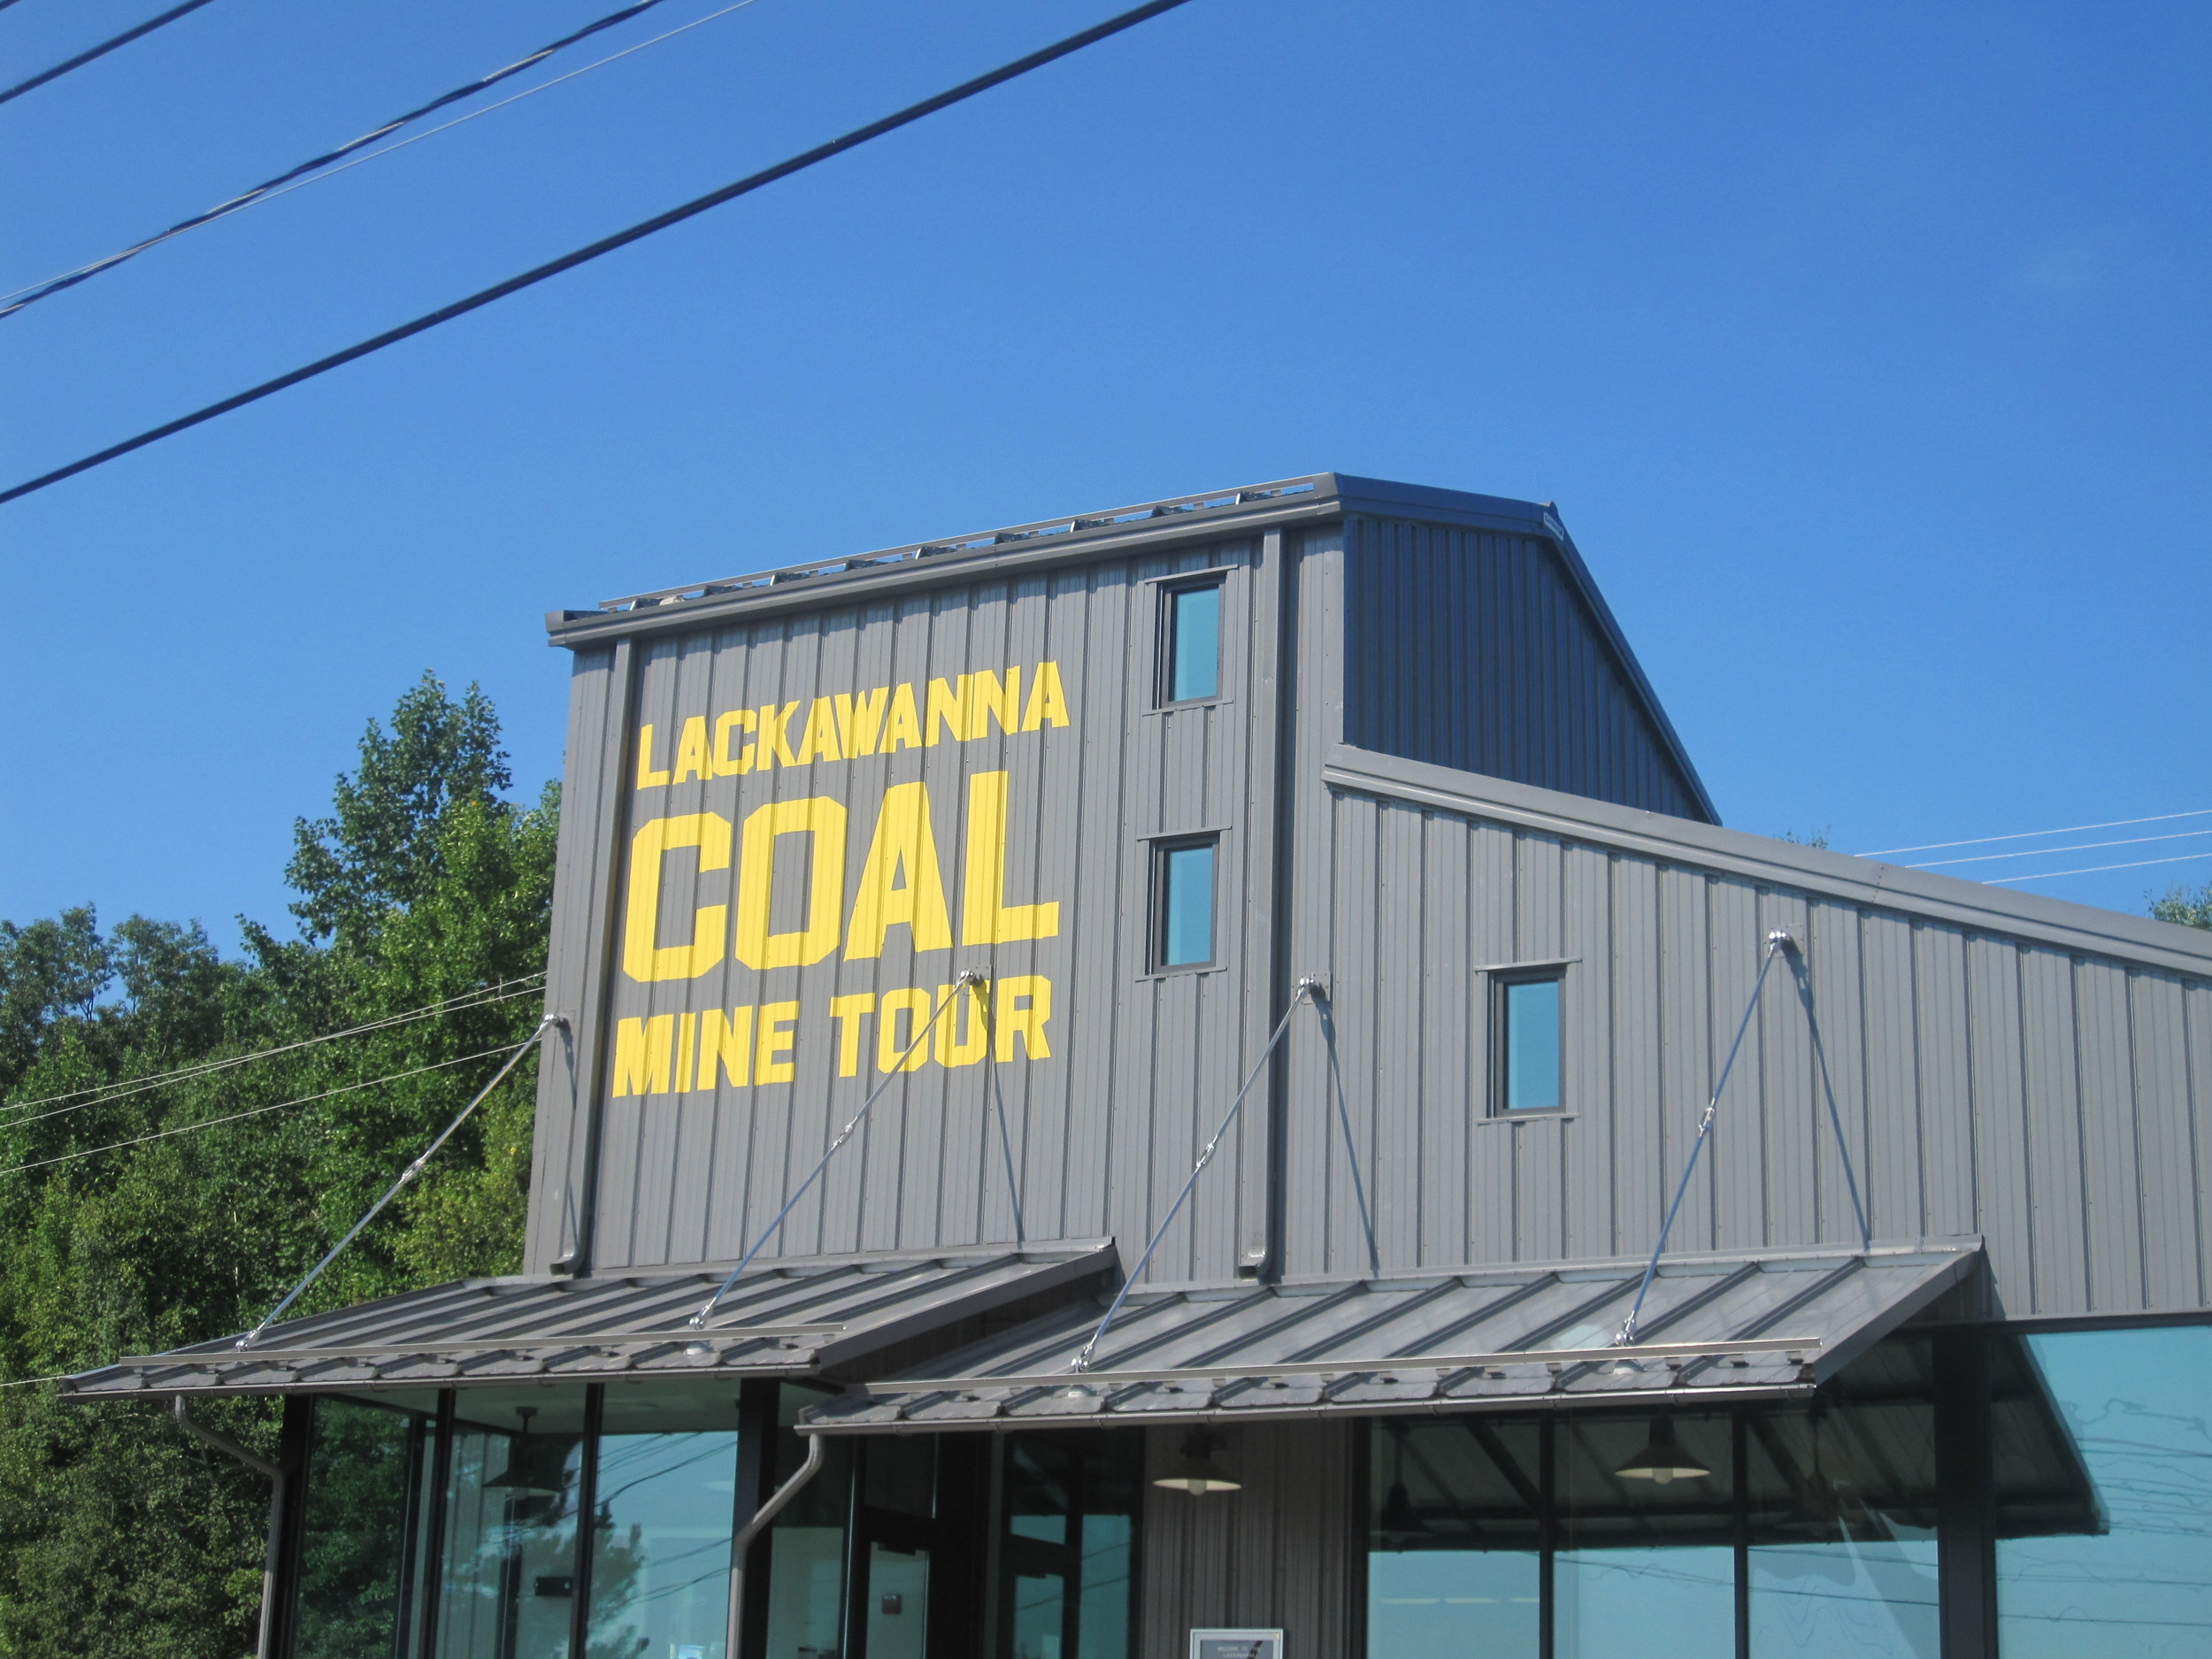 Lackawanna_Coal_Mine_Tour_sign_IMG_1553.JPG